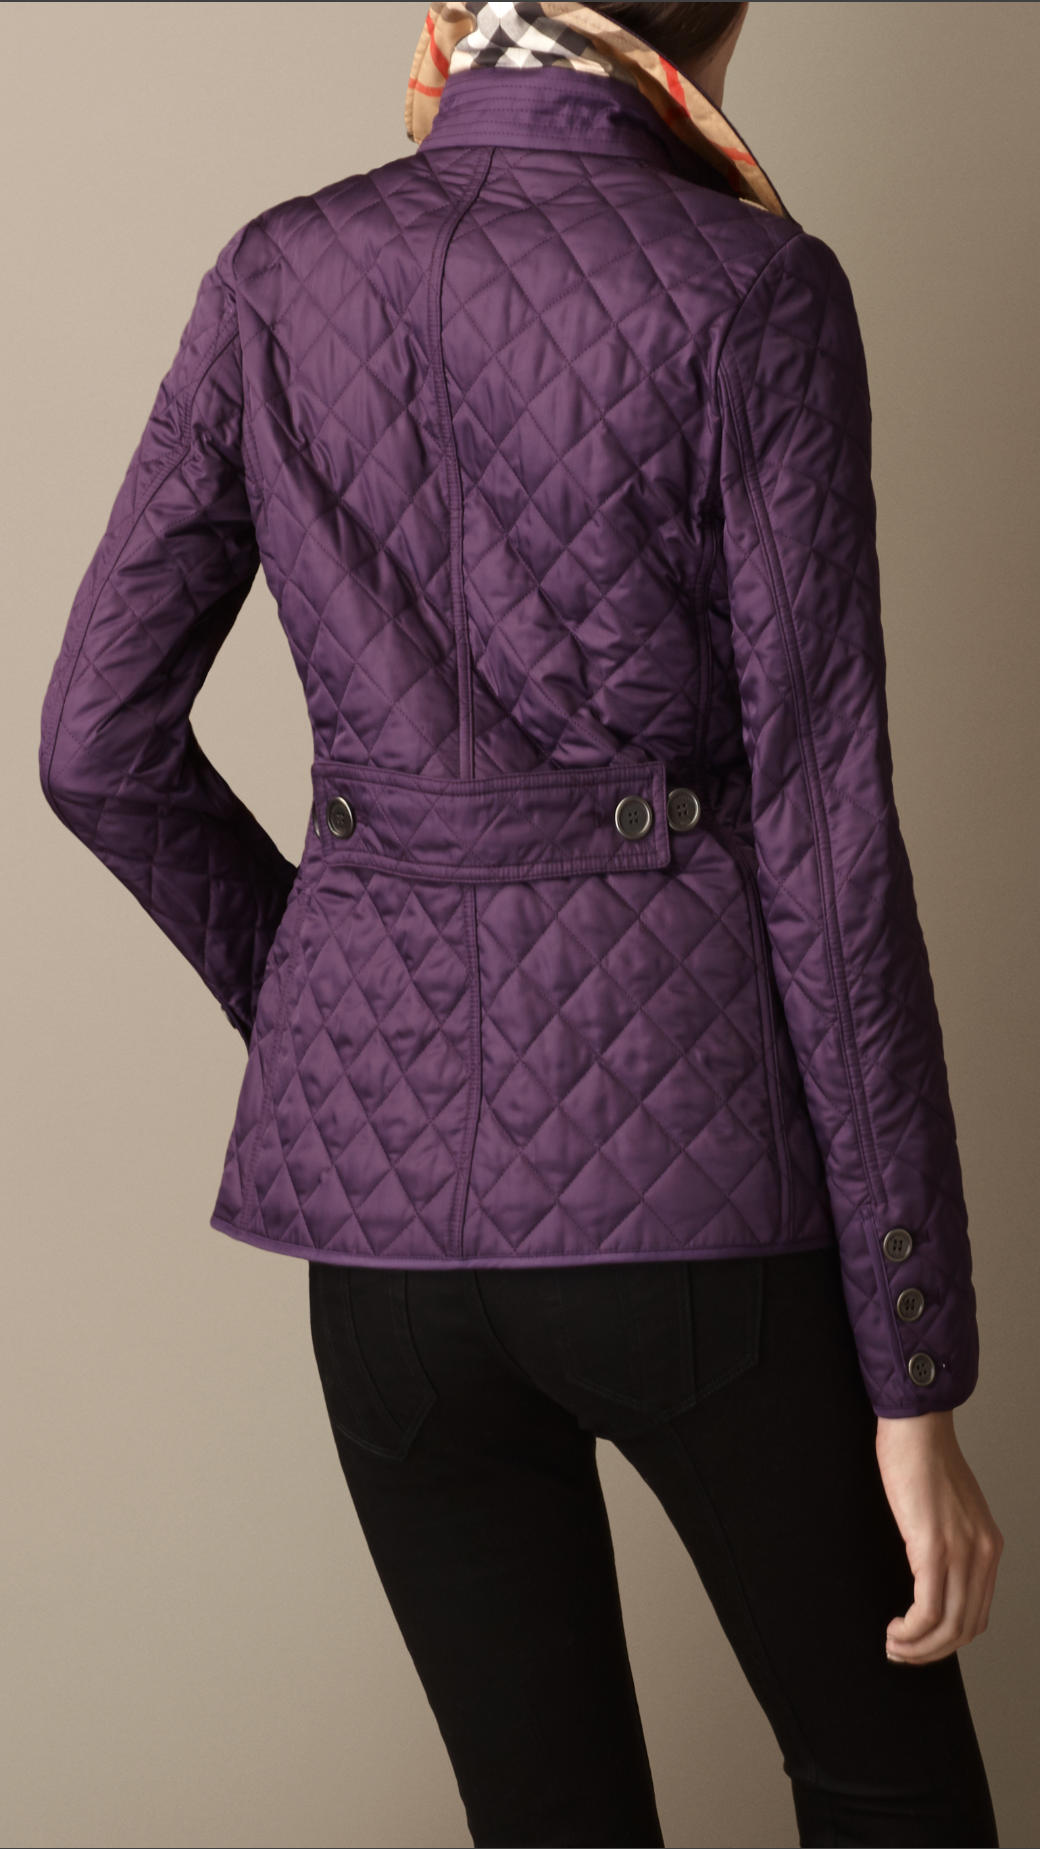 Lyst - Burberry Cinched Waist Quilted Jacket in Purple : purple quilted jacket - Adamdwight.com